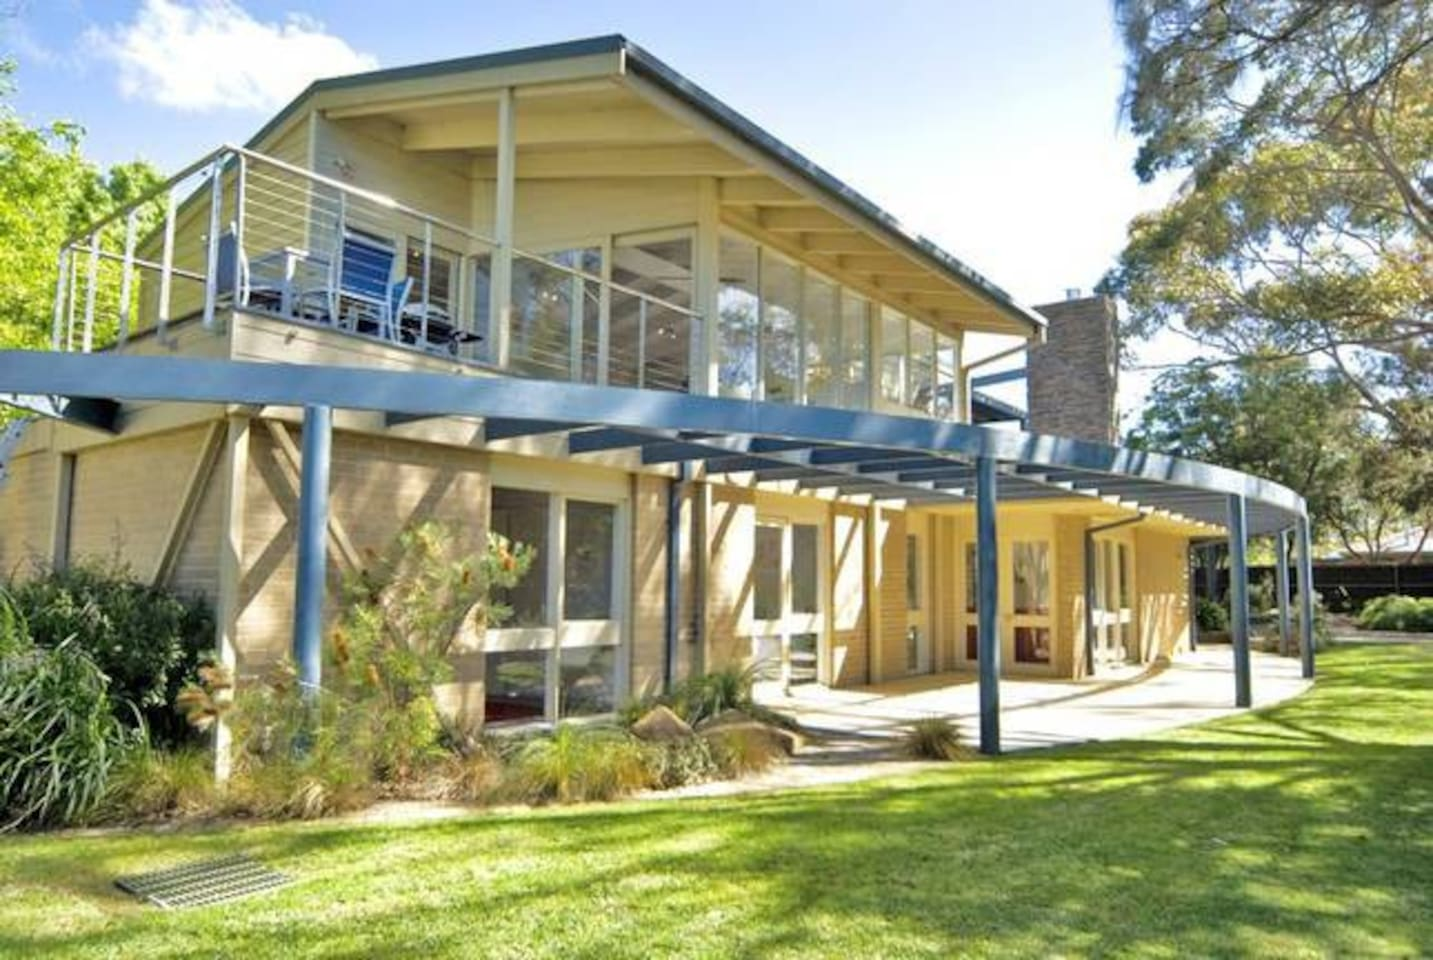 The perfect holiday house with bay views, 2 doors from direct beach access